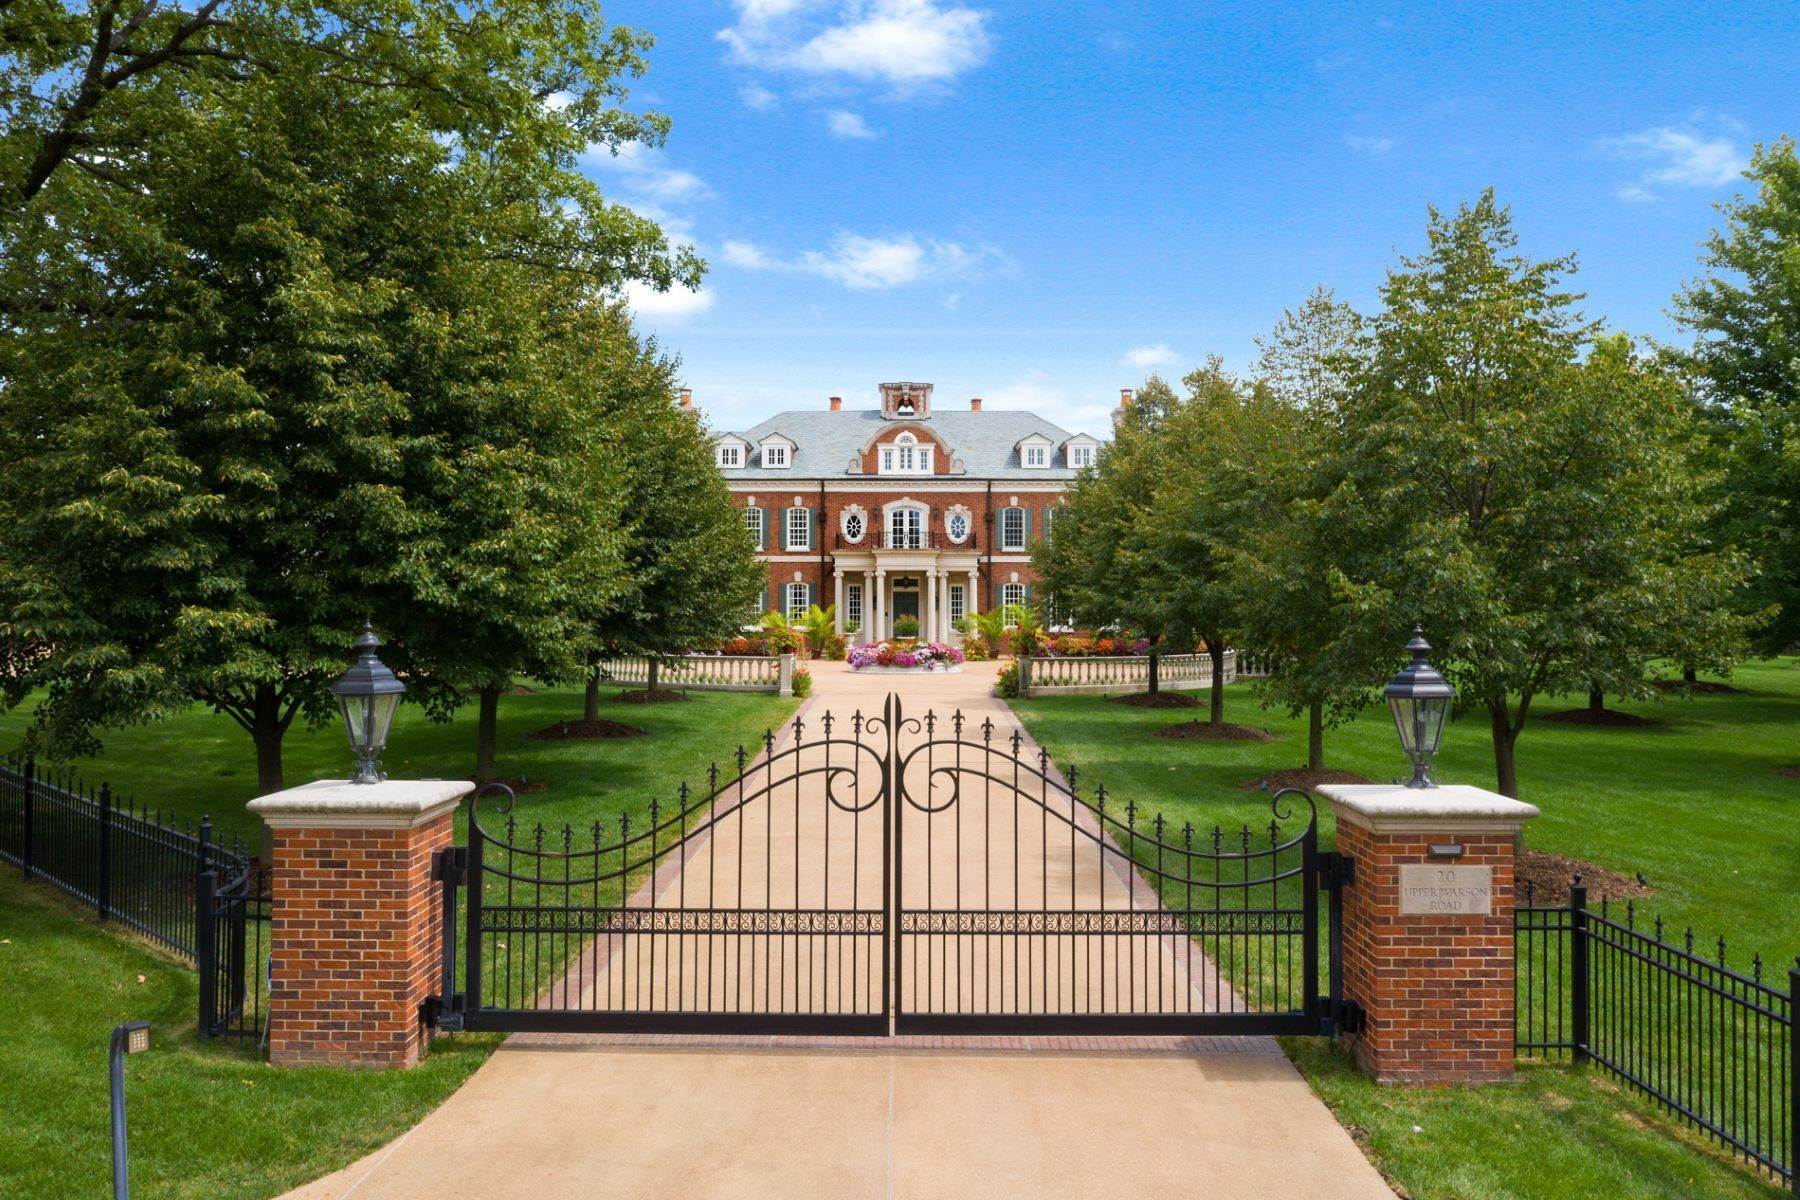 Single Family Homes for Sale at The Westbury Estate: A Legacy Property in the Heart of Ladue 20 Upper Warson Road Ladue, Missouri 63124 United States